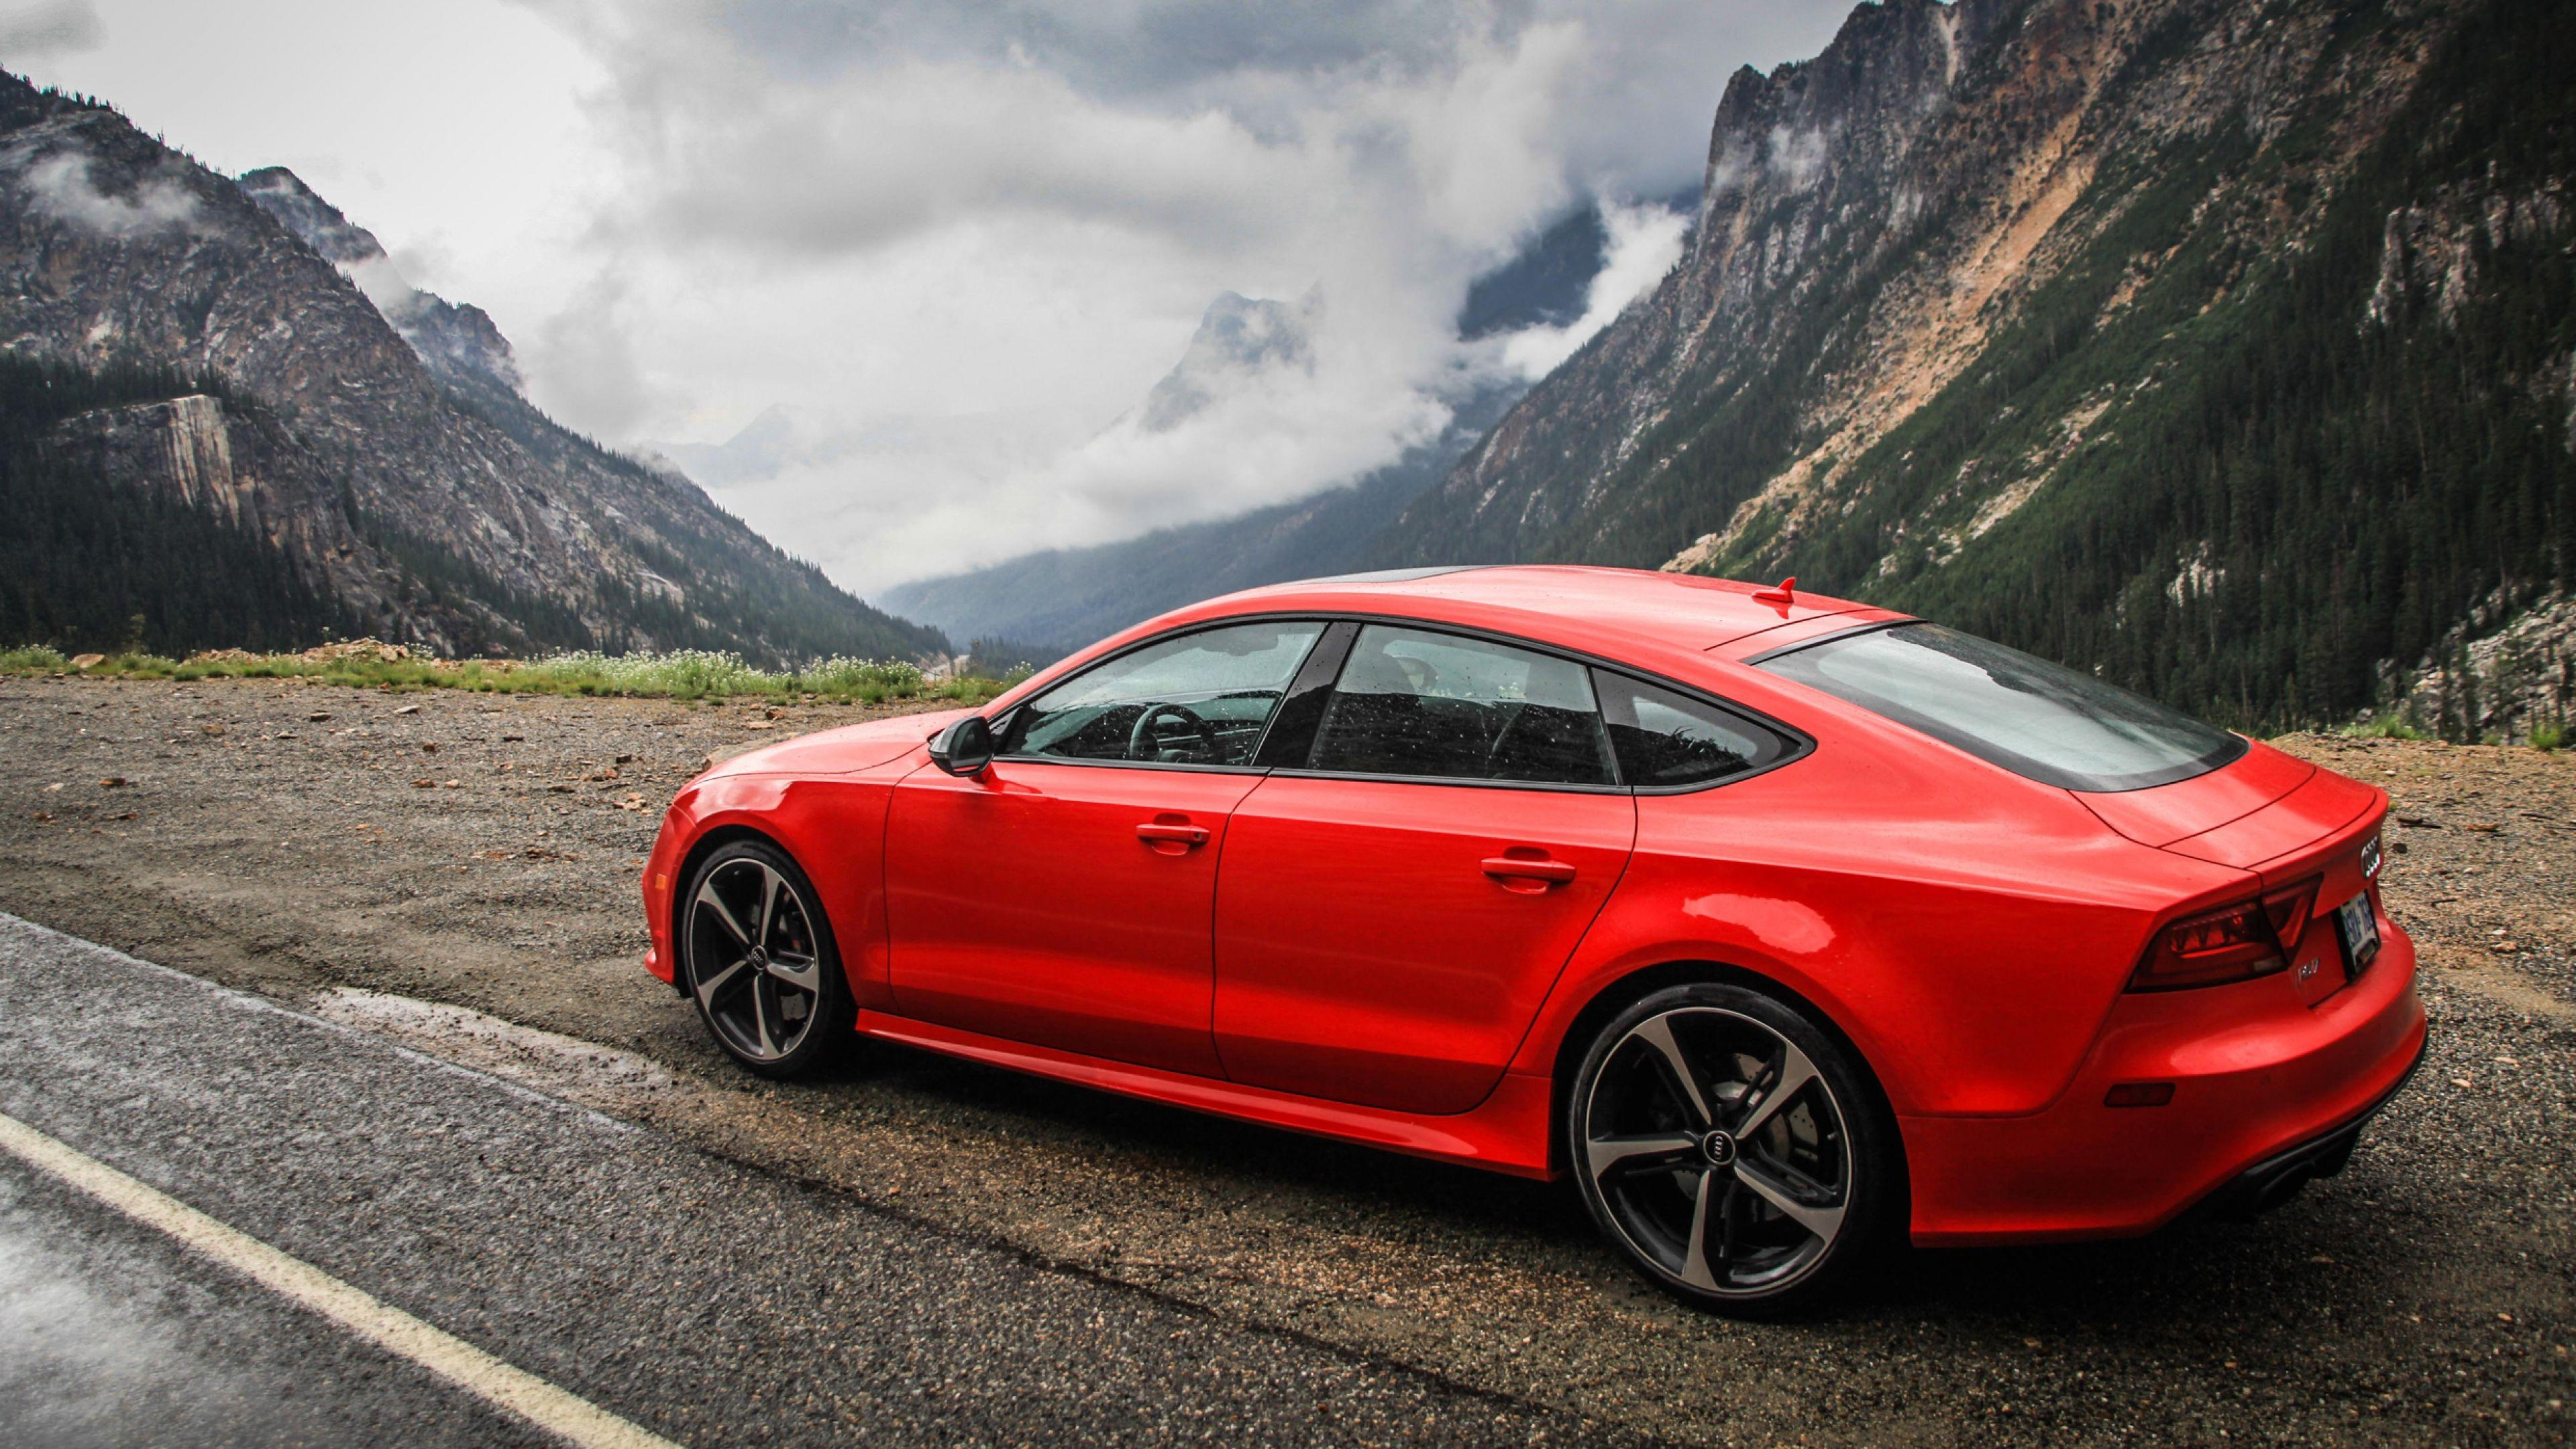 Download Wallpapers 3840x2160 Audi, Rs7, Red, Side view, Mountain